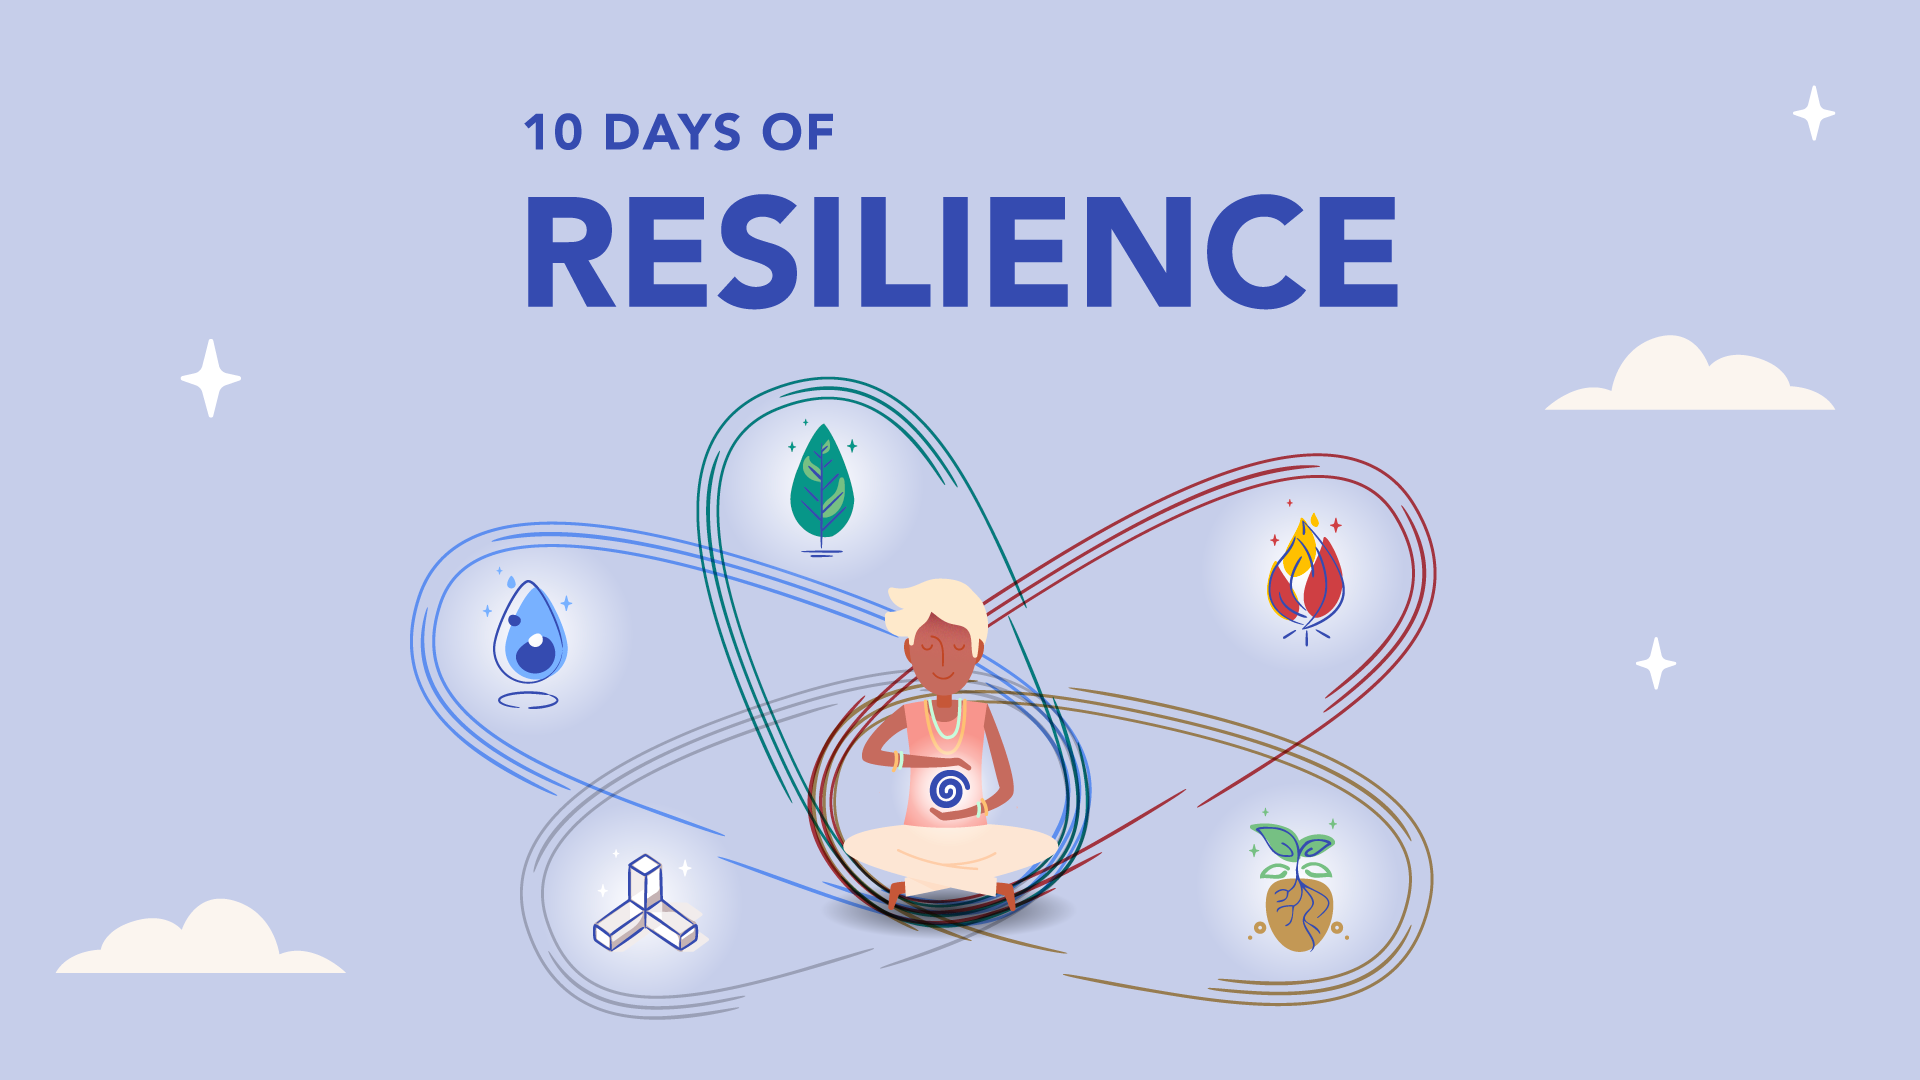 FEBRUARY'S COMMUNITY COURSE: 10 Days of Resilience 🌀